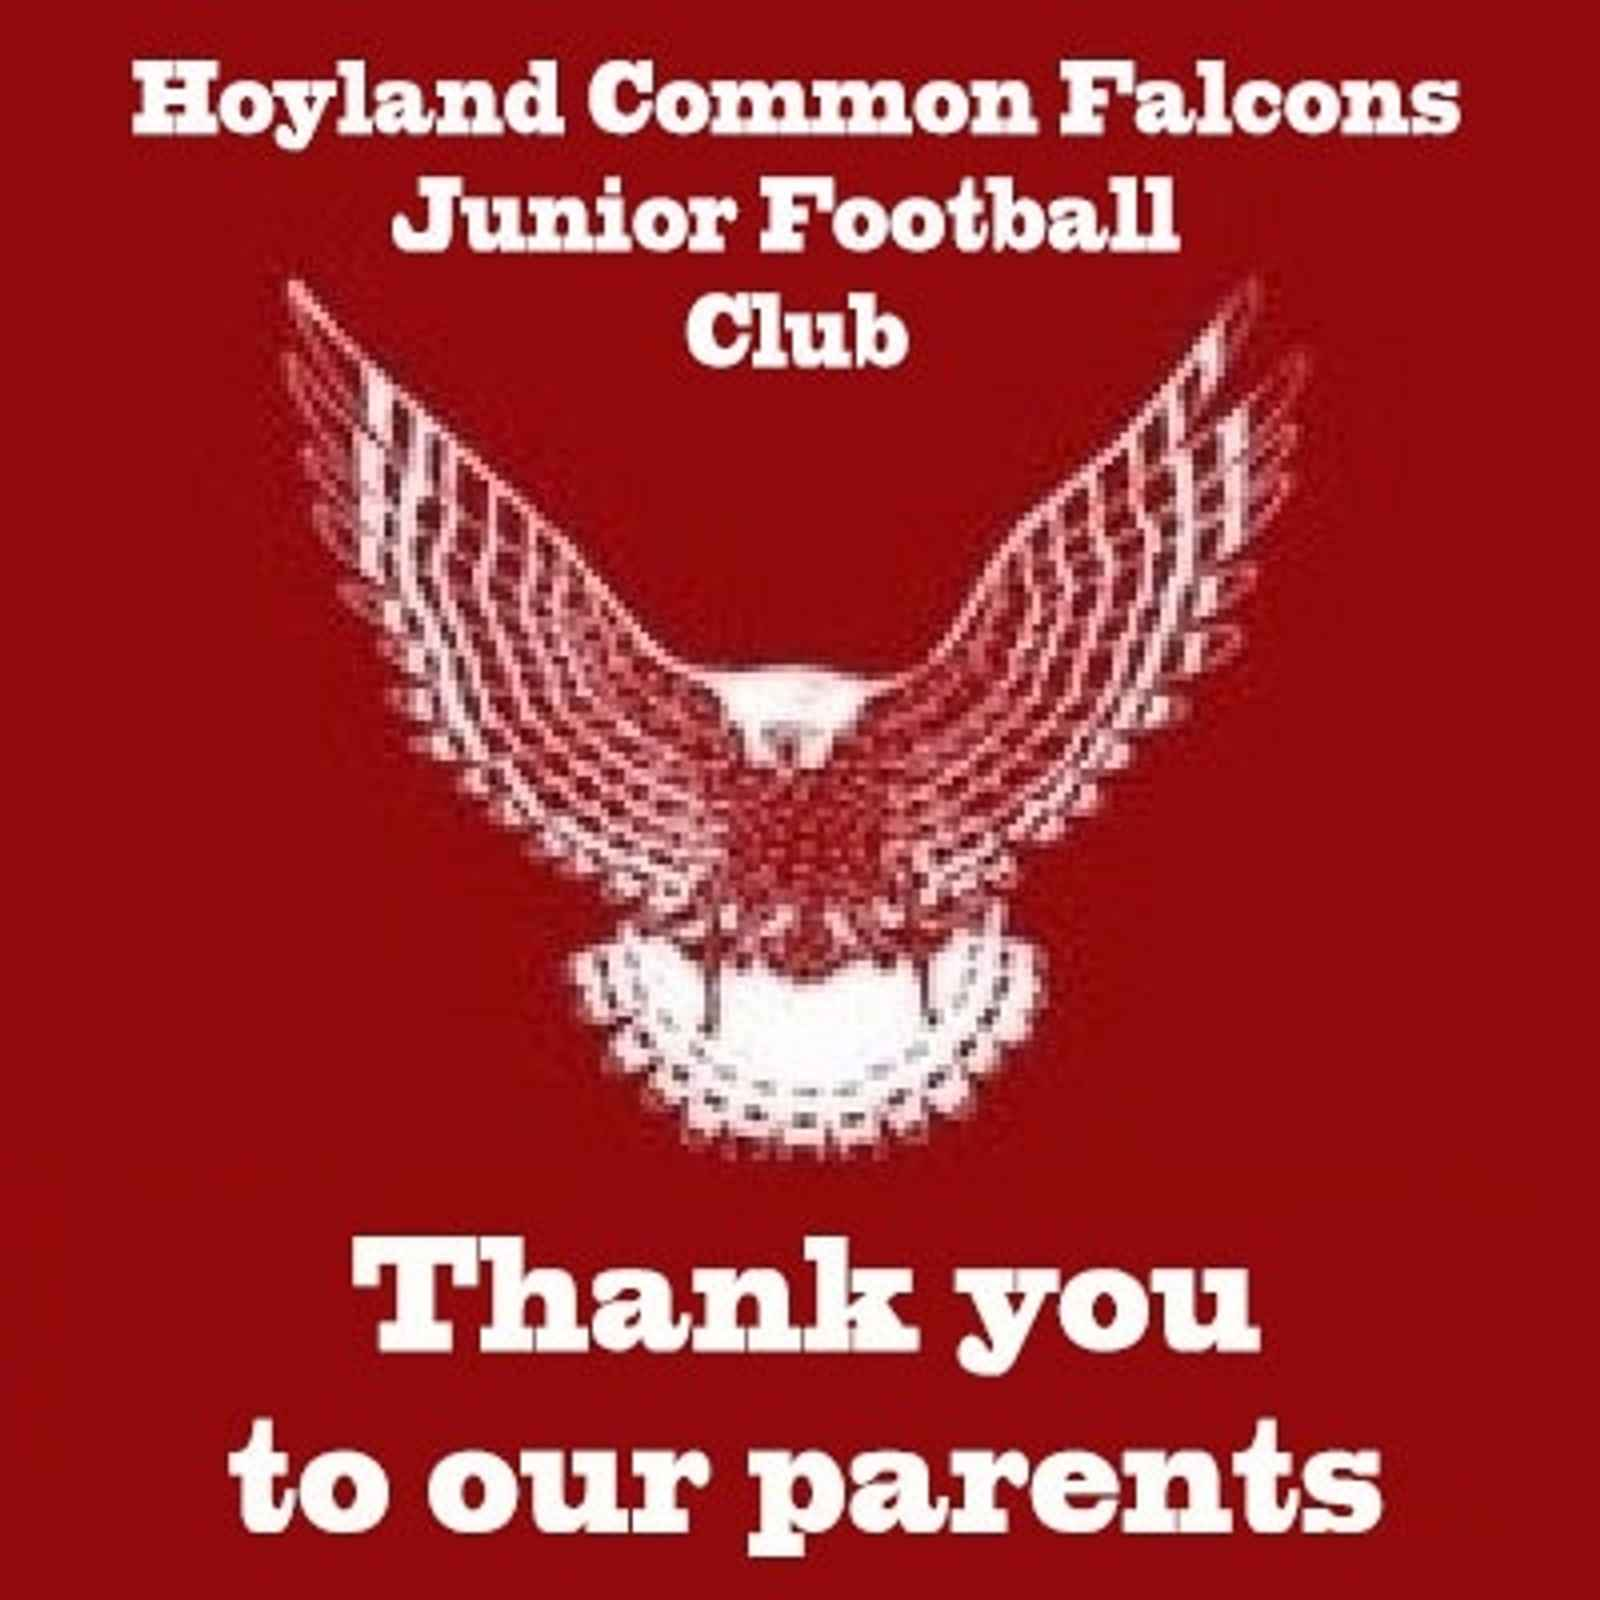 Thank you to all our parents within the club!